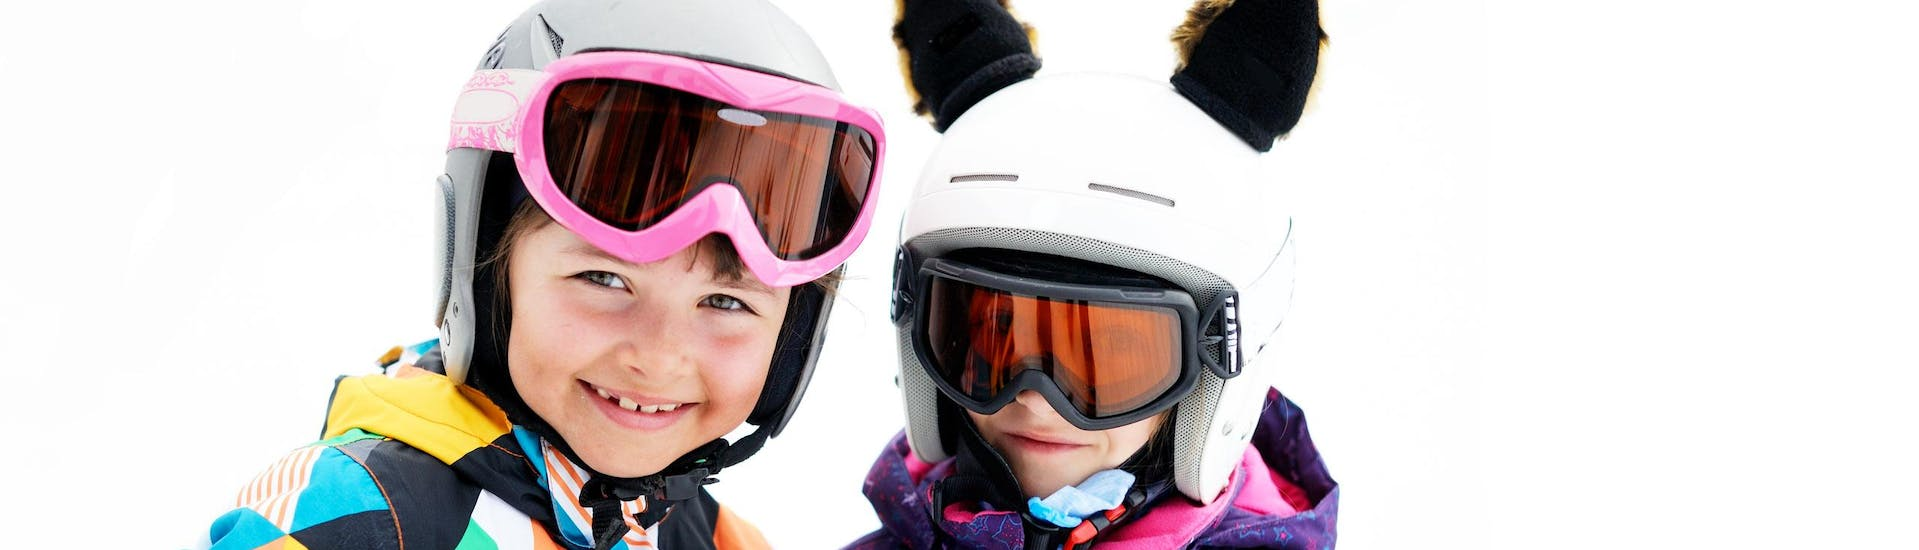 Two young children smiling at the camera during one of the Private Ski Lessons for Kids of All Levels organised by Snowsports Alpbach Aktiv.